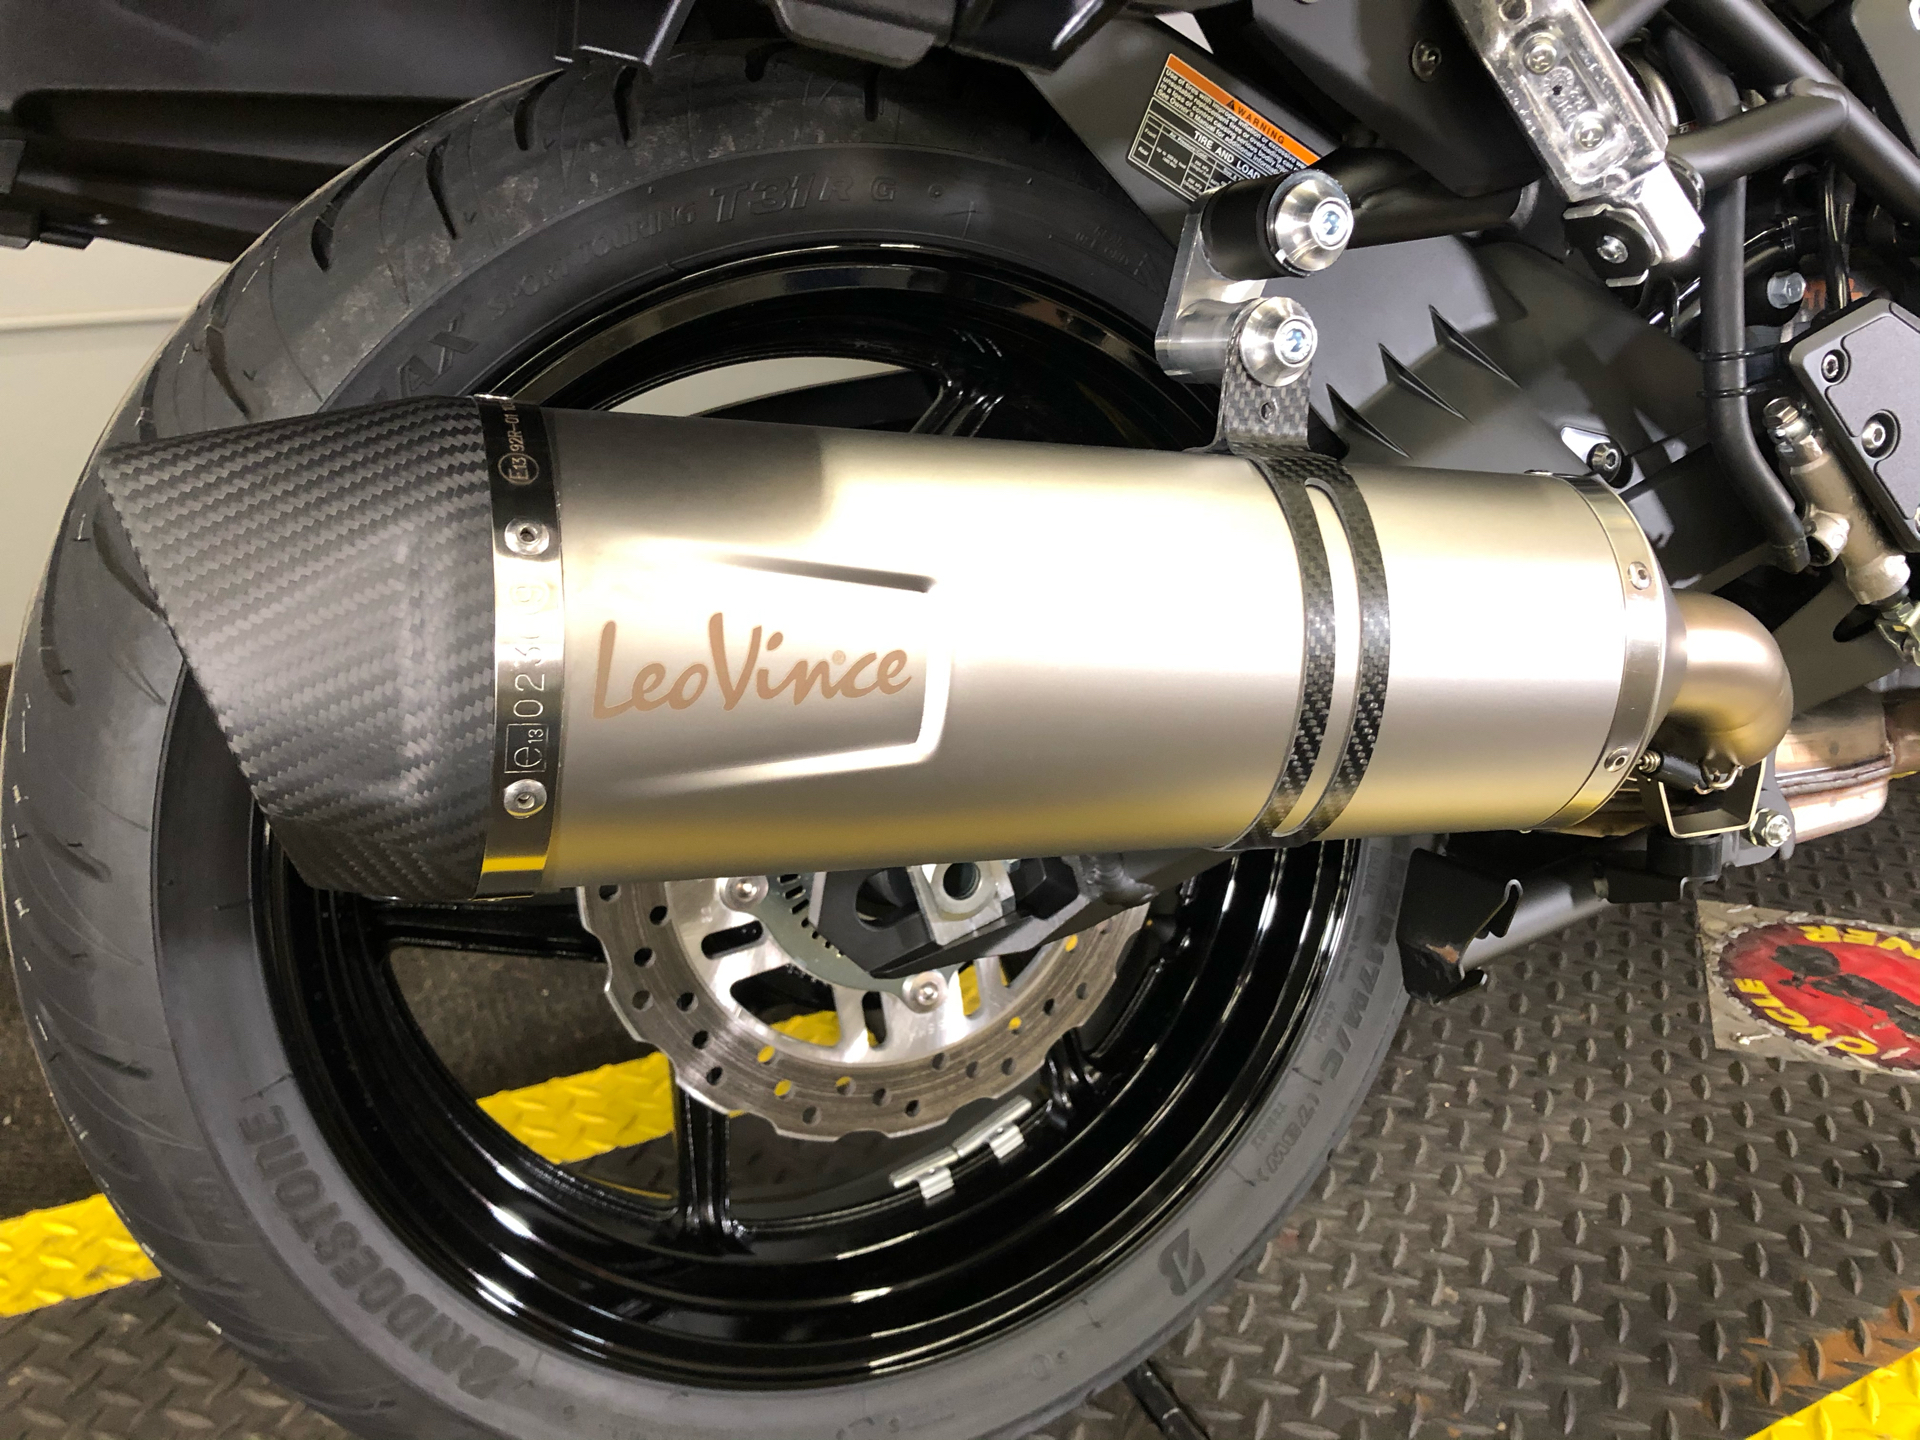 2020 Kawasaki Versys 1000 SE LT+ in Tyrone, Pennsylvania - Photo 3